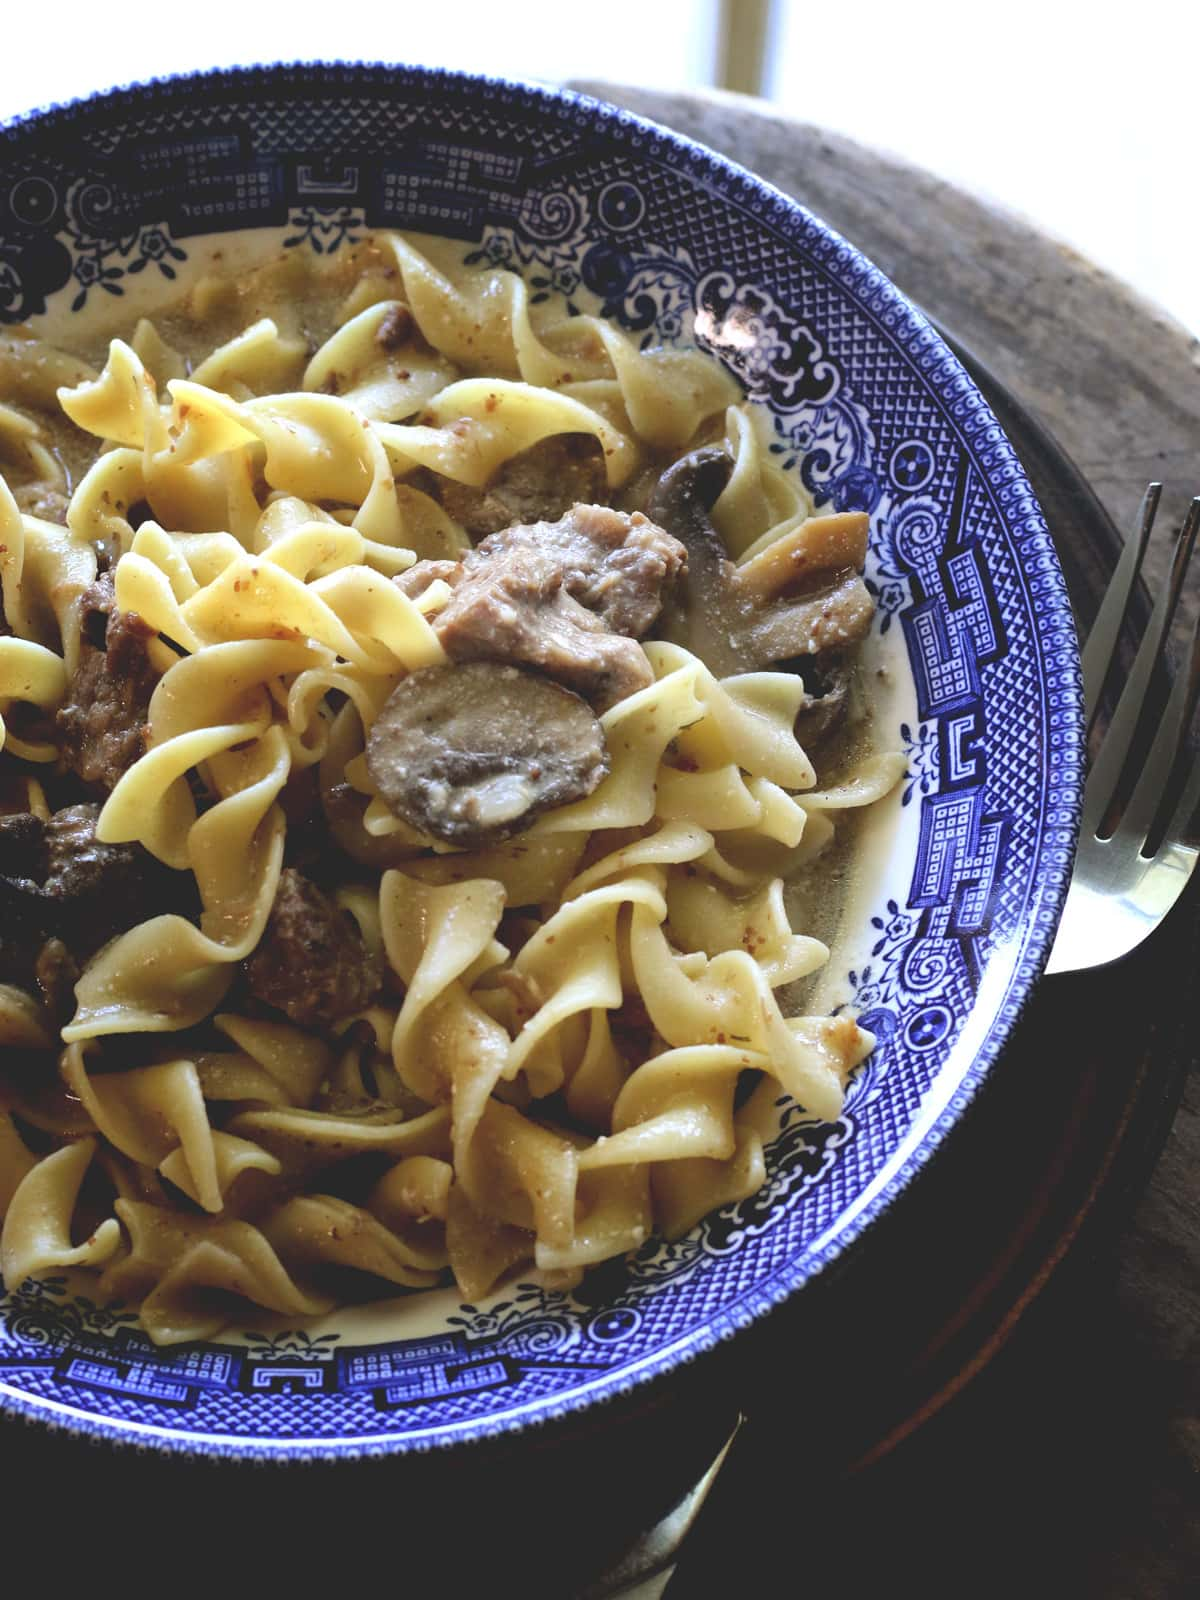 All of the great flavor of Beef Stroganoff made in your Instant Pot. Quick, simple and delicious.